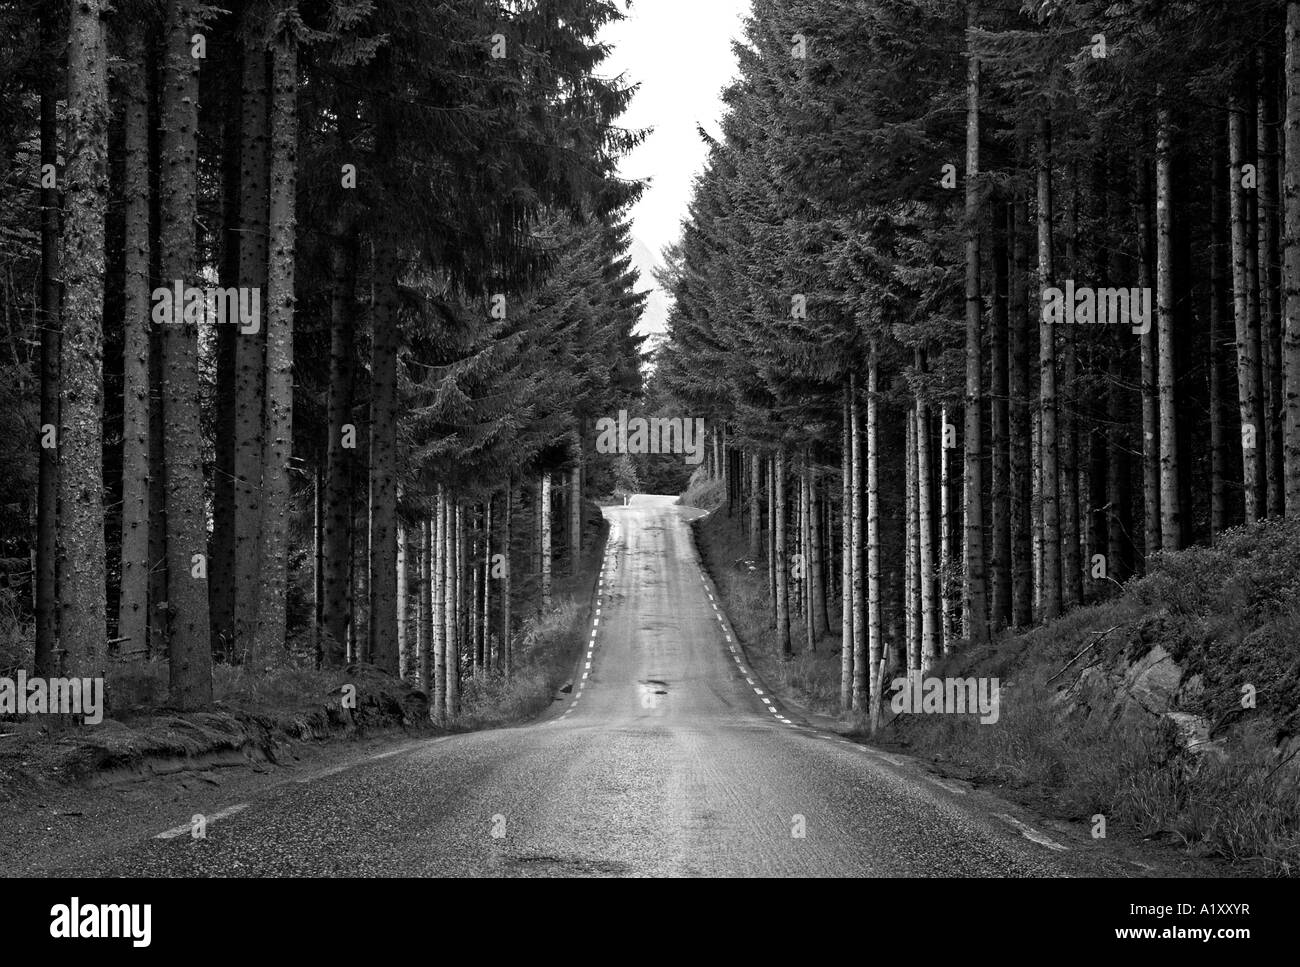 A tree lined roadway through Norwegian pine forest, Norway - Stock Image